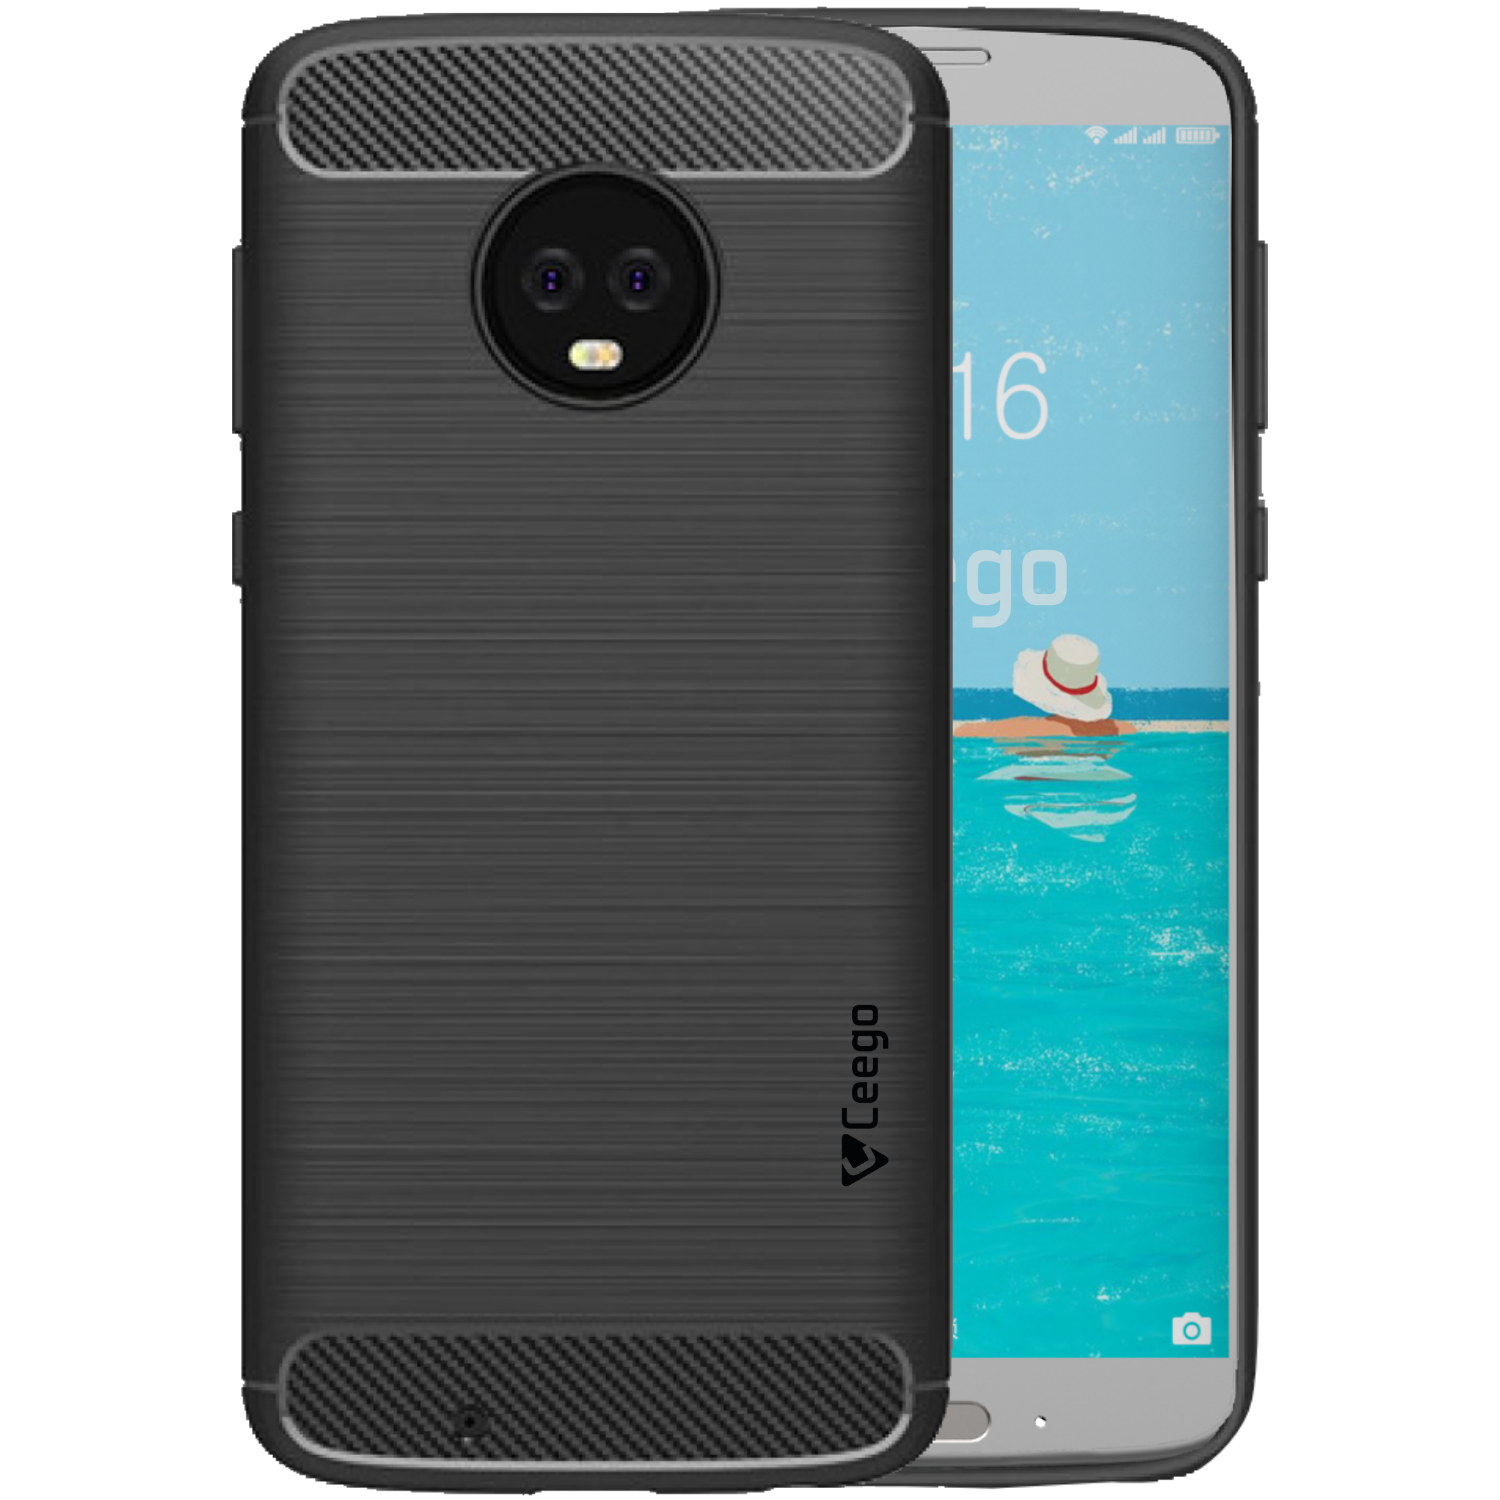 Ceego Carbon Fiber Shield Back Case for Motorola Moto G6  – Matte Black